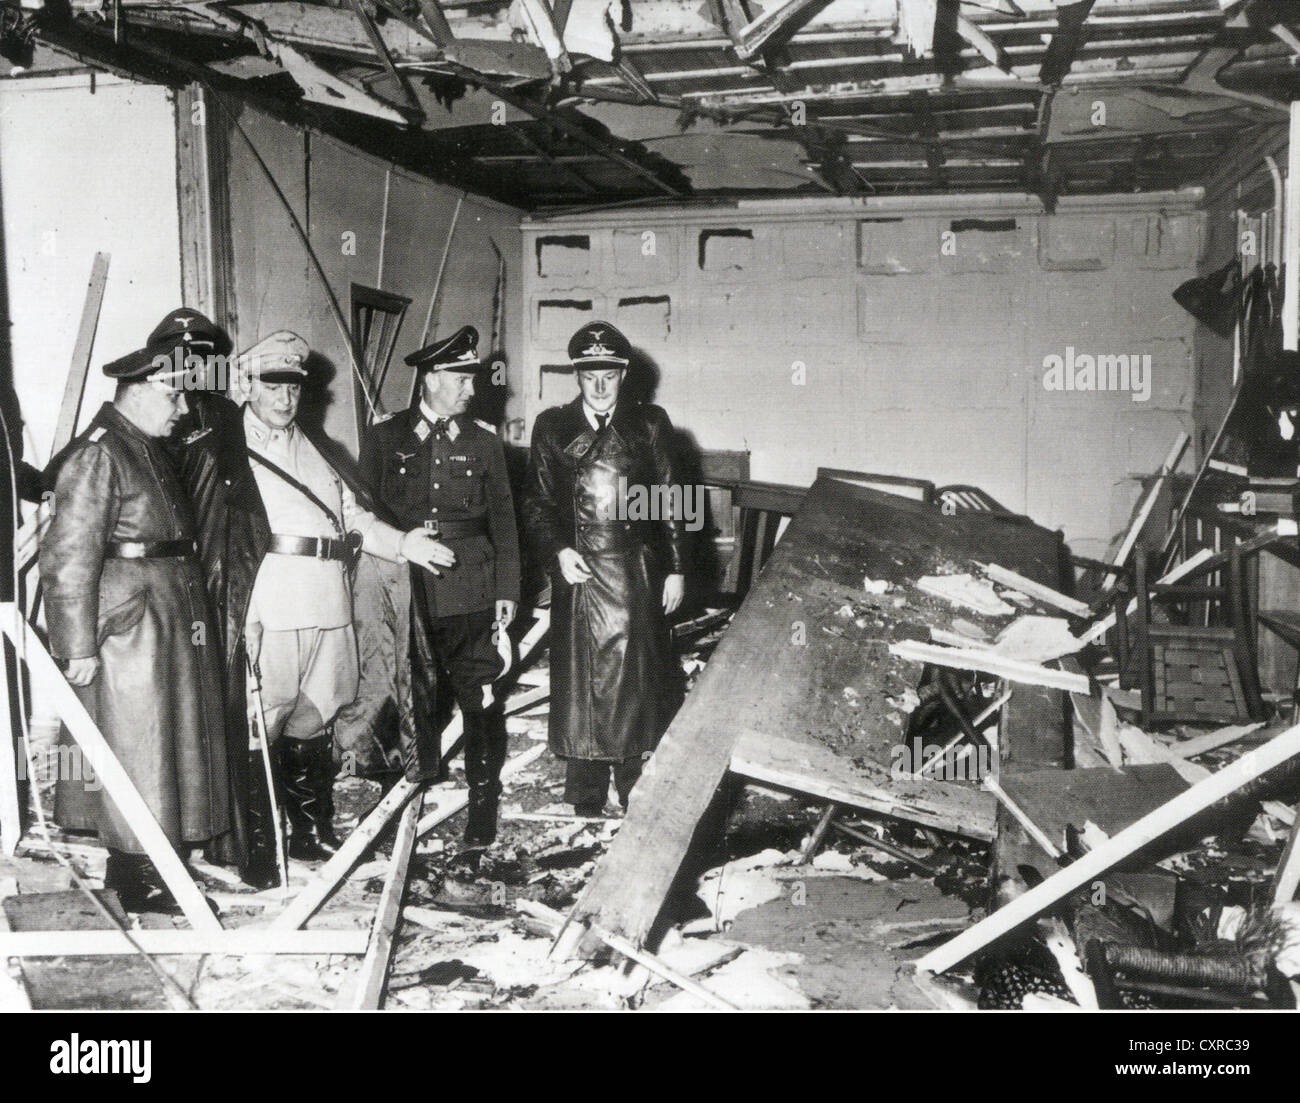 HERMAN GORING second from left shows Martin Bormann at left  damage in Hitler's HQ after assassination attempt - Stock Image